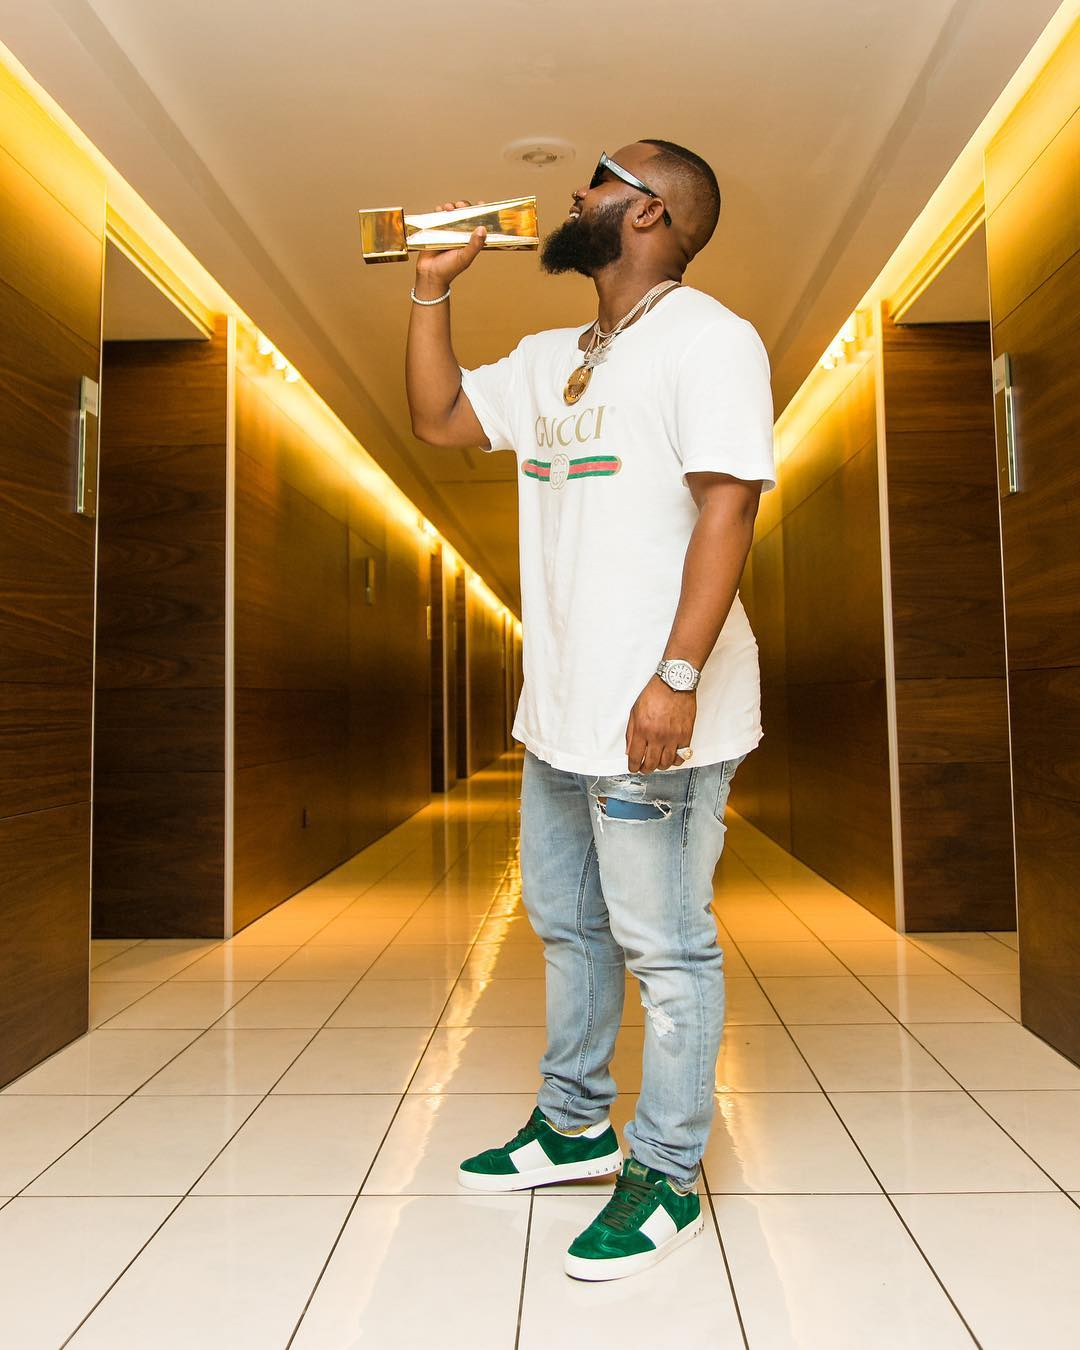 Cassper Nyovest posing with the award that he won at the Sound City Awards in Lagos